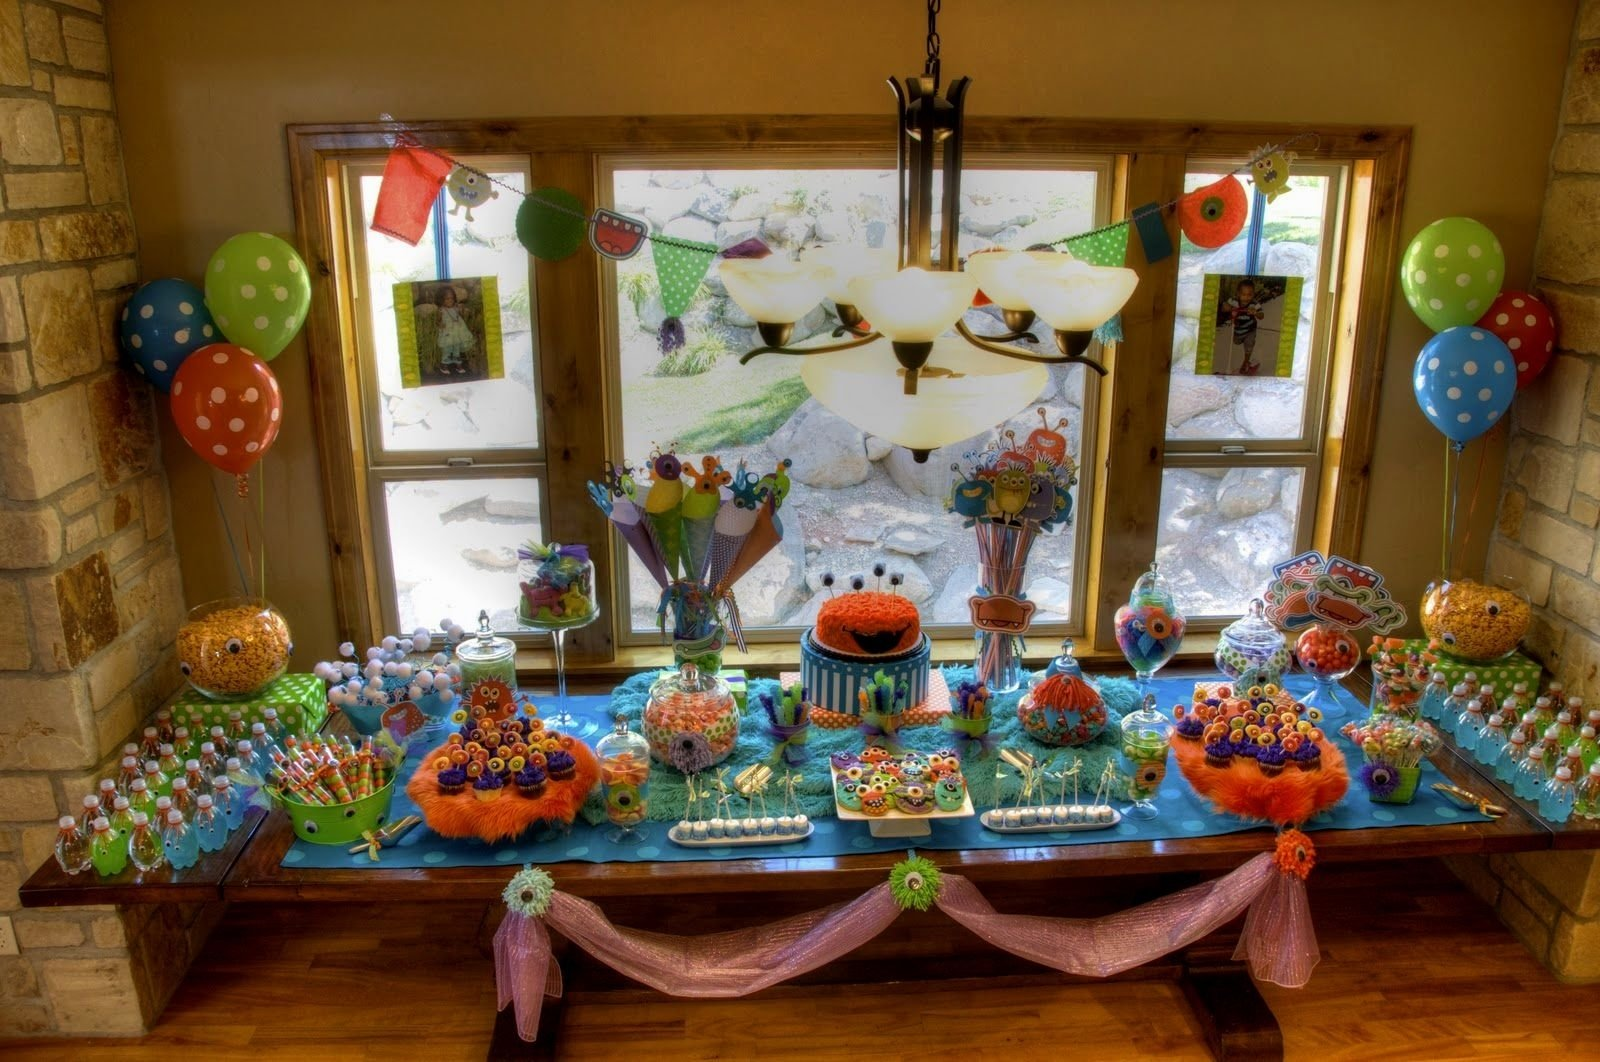 Birthday Party Ideas For 8 Year Old Daughter At Home Easy Games